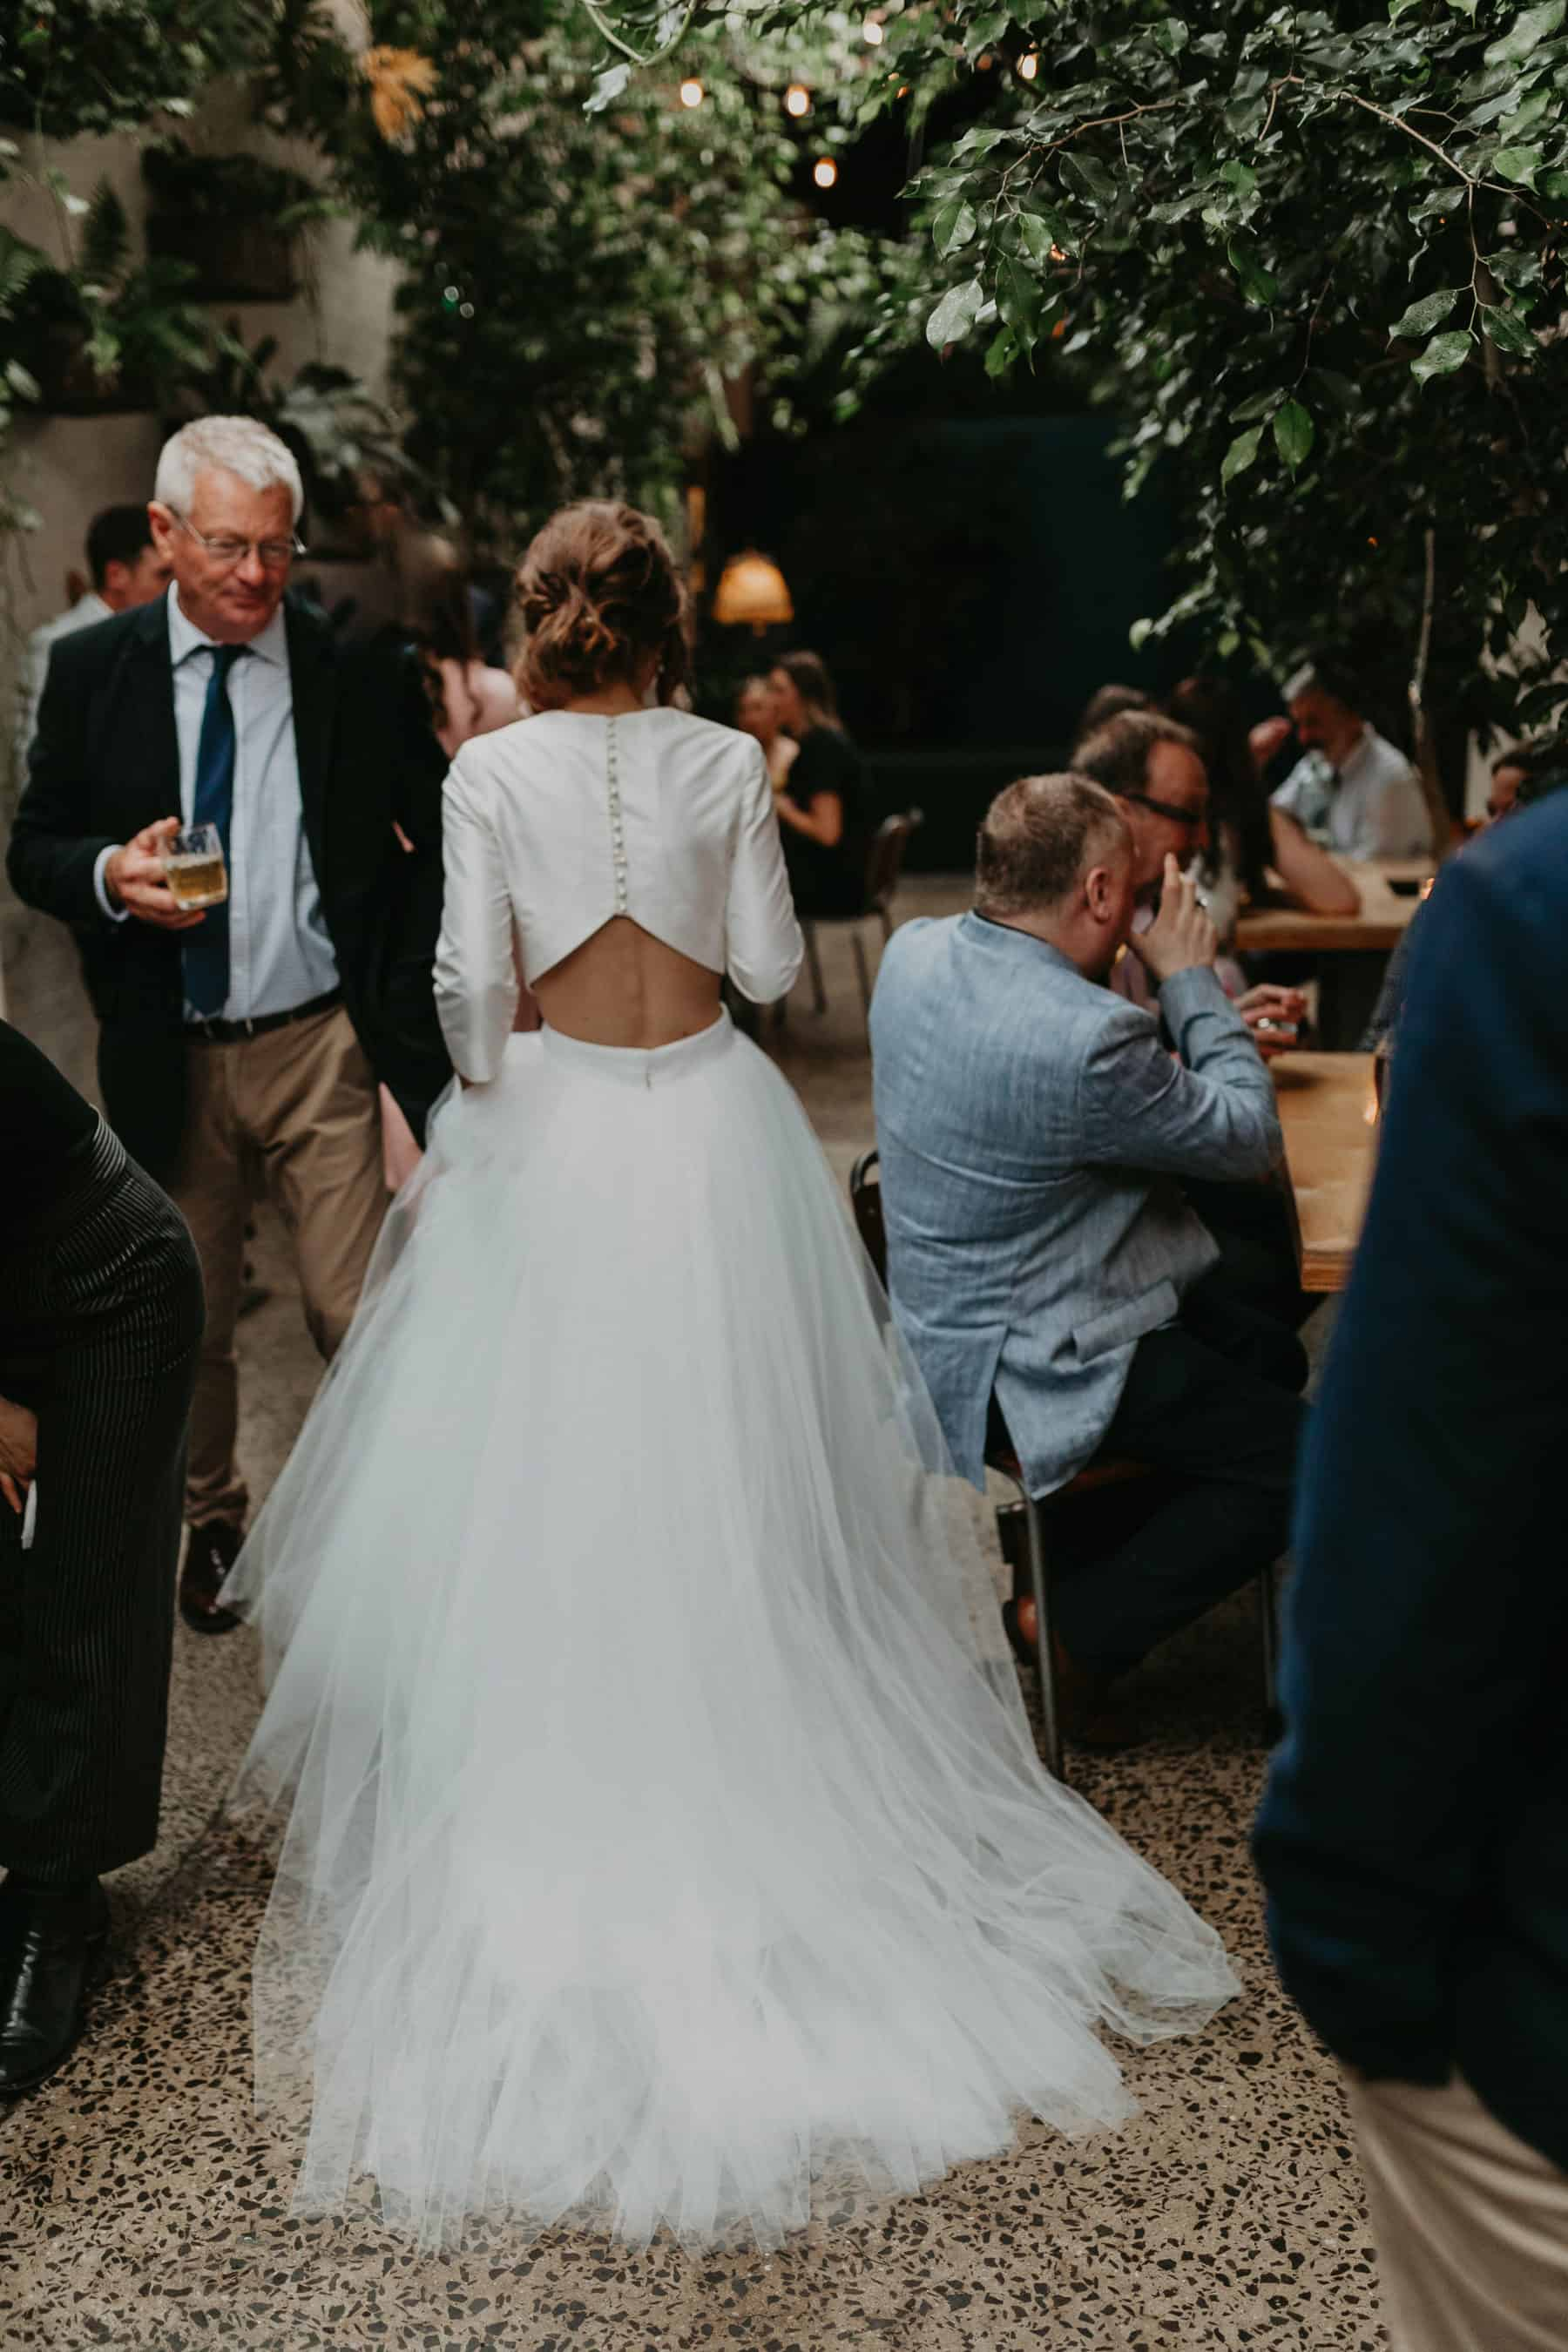 Best wedding dresses of 2019 - crop top and tulle skirt